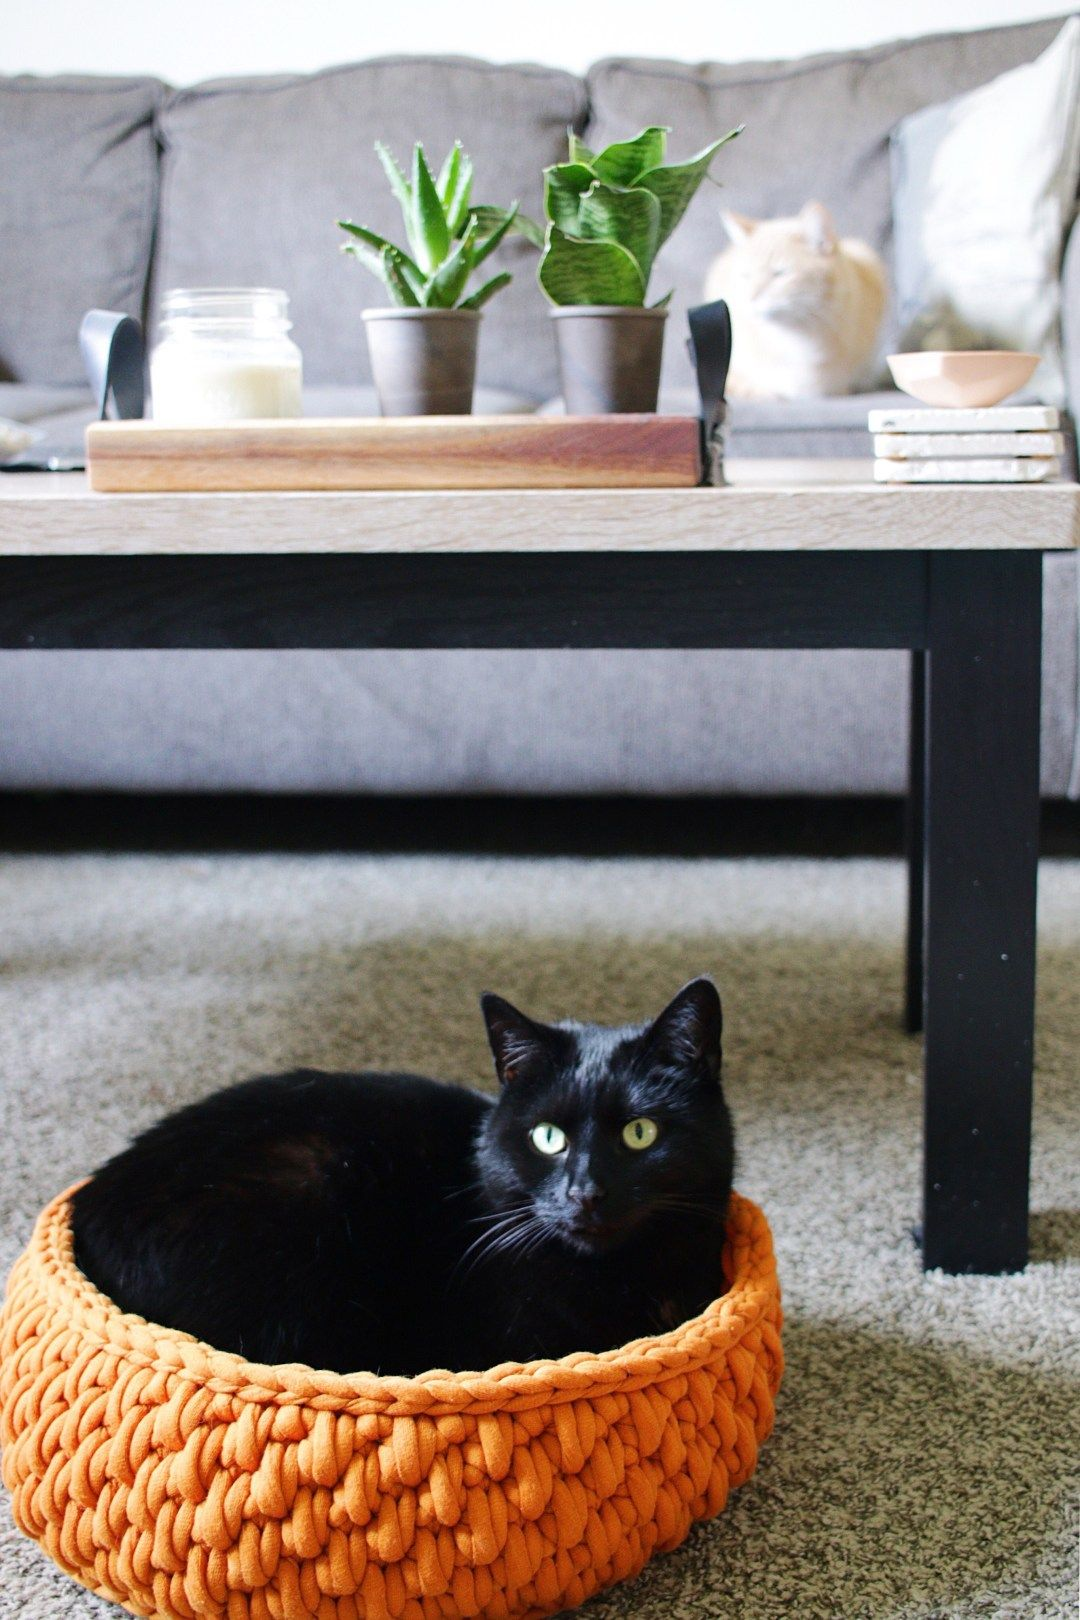 The Big Little Pet Bed, a Round Cat Bed made with Jumbo